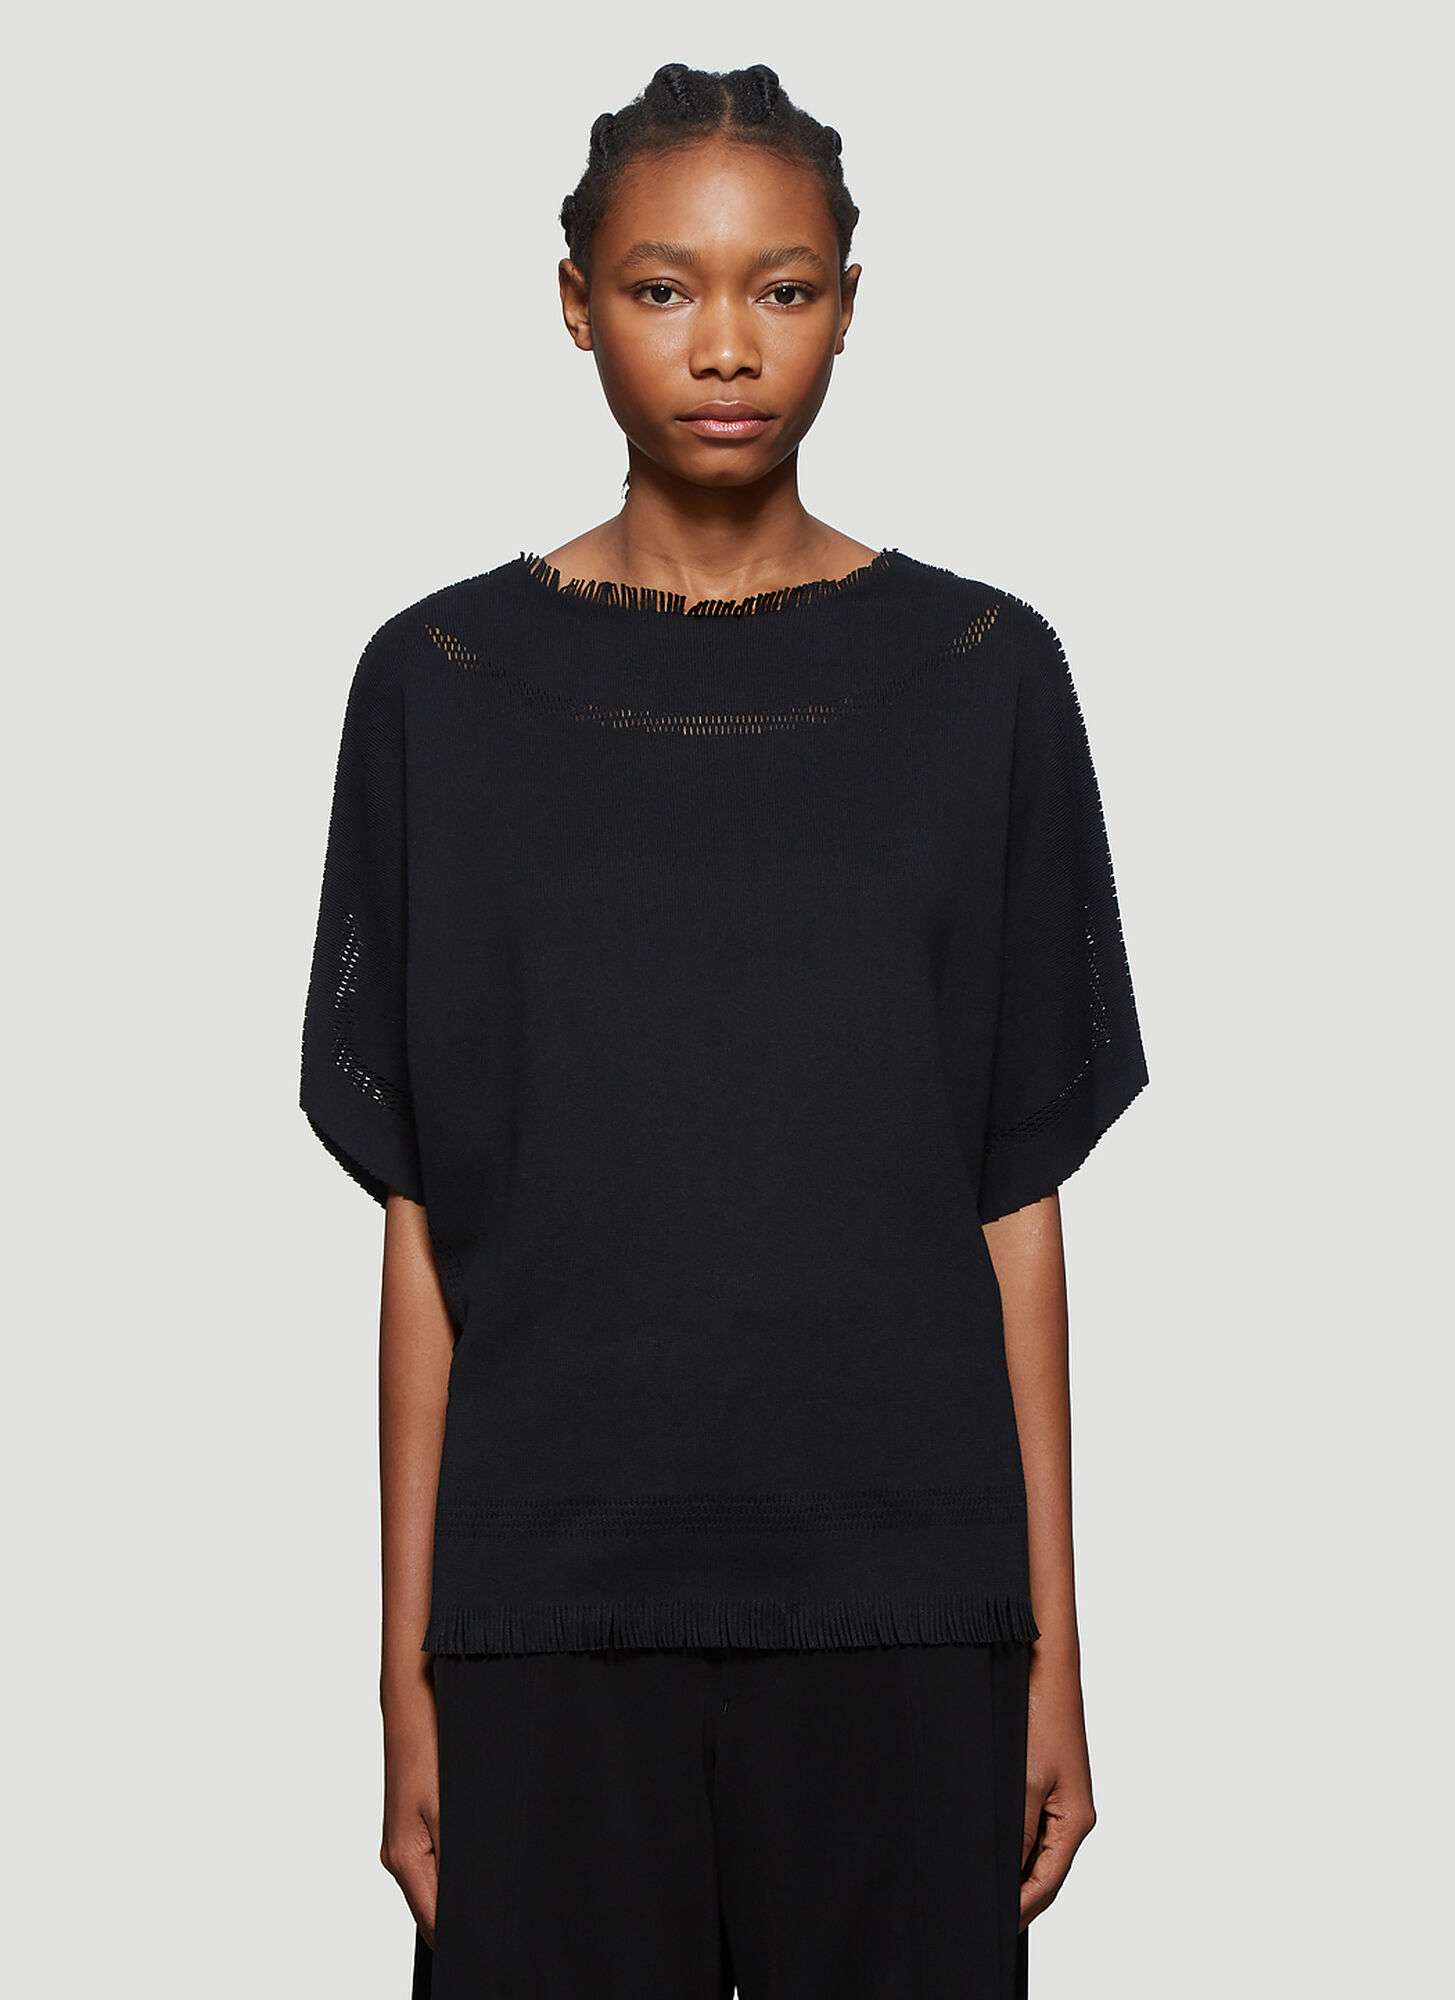 Issey Miyake Fringed-Trim Knitted Top in Black